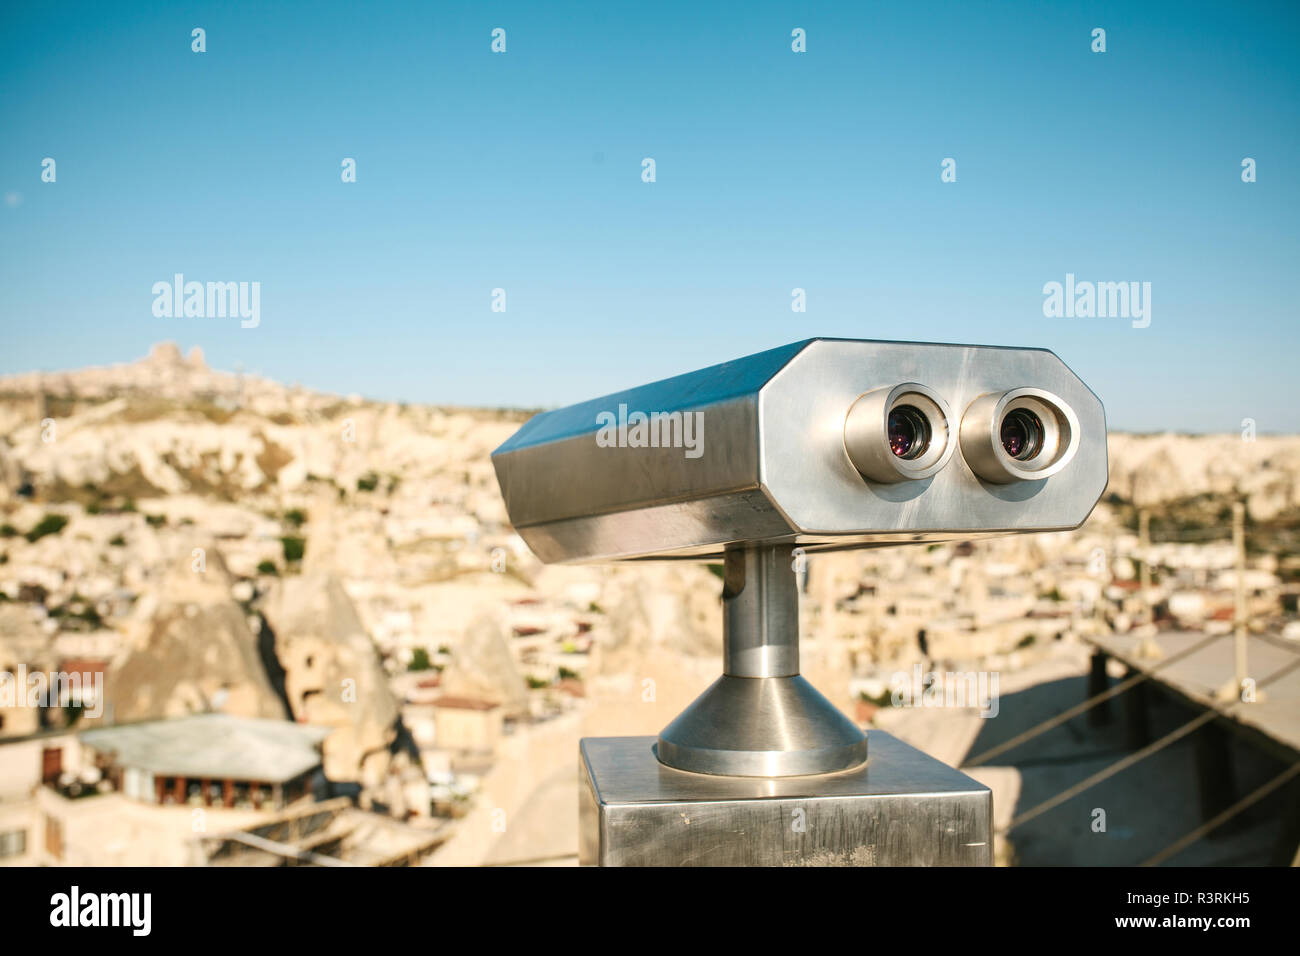 Binoculars on the viewing platform. Ahead is a blurred view of a city called Goreme in Cappadocia in Turkey. Sightseeing. Stock Photo